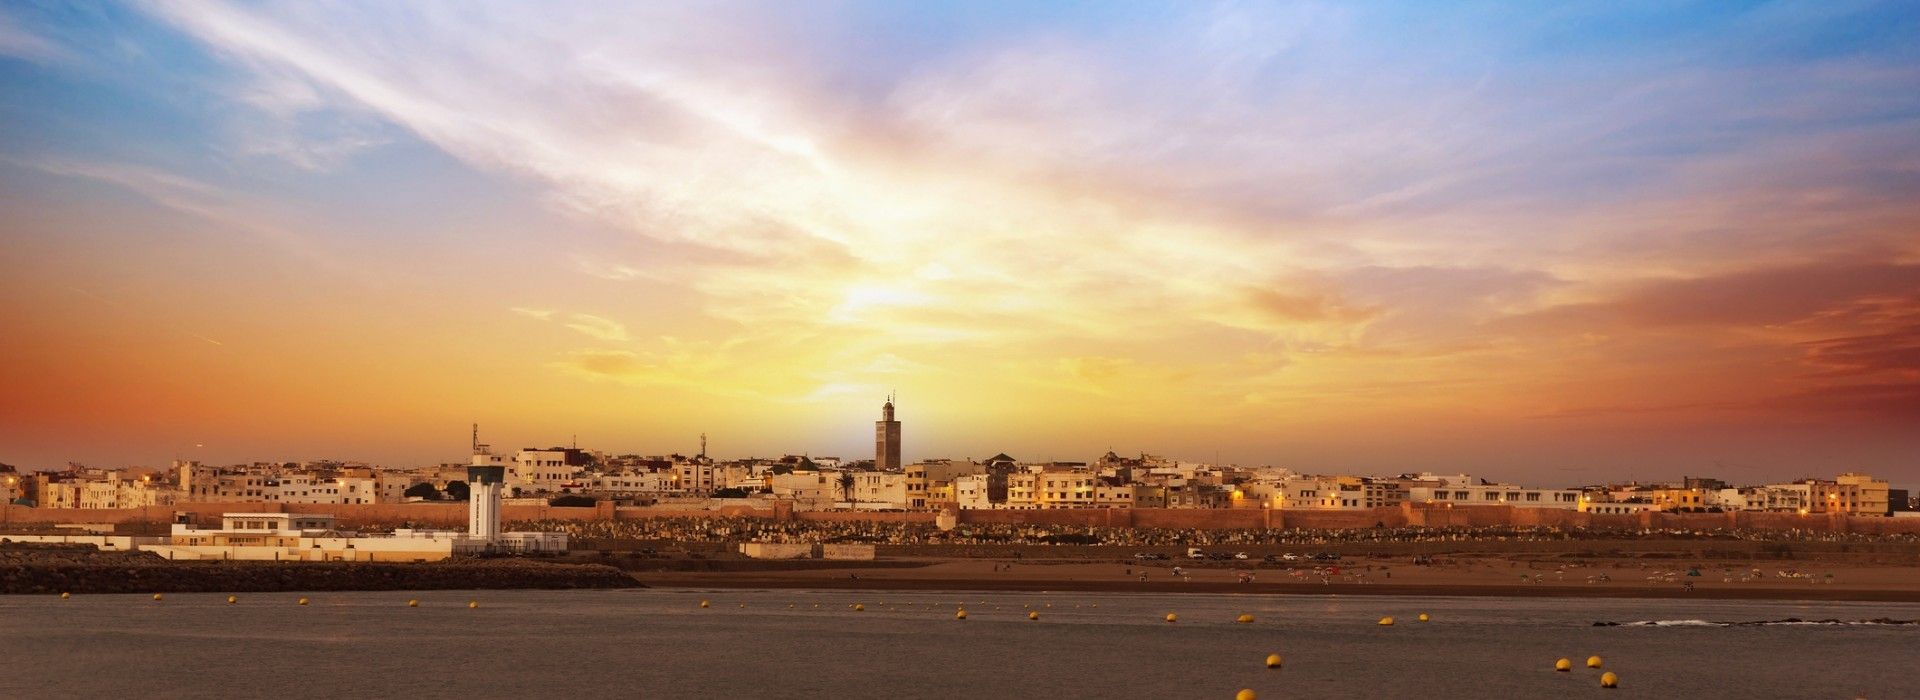 Cultural, religious and historic sites Tours in Morocco